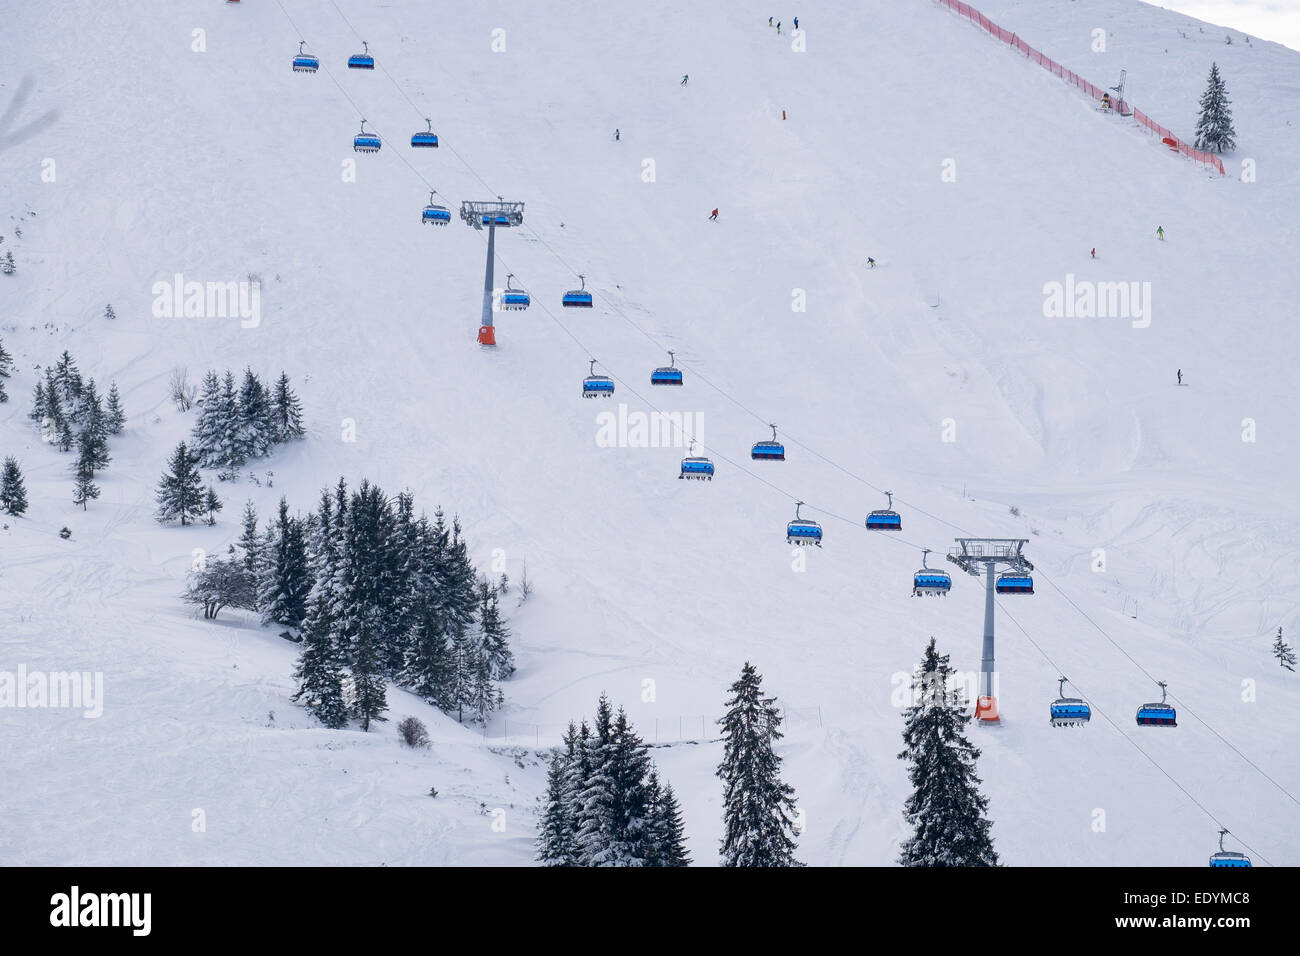 Six-seater chairlift in the Sudelfeld skiing area, Mangfall Mountains, Upper Bavaria, Bavaria, Germany - Stock Image